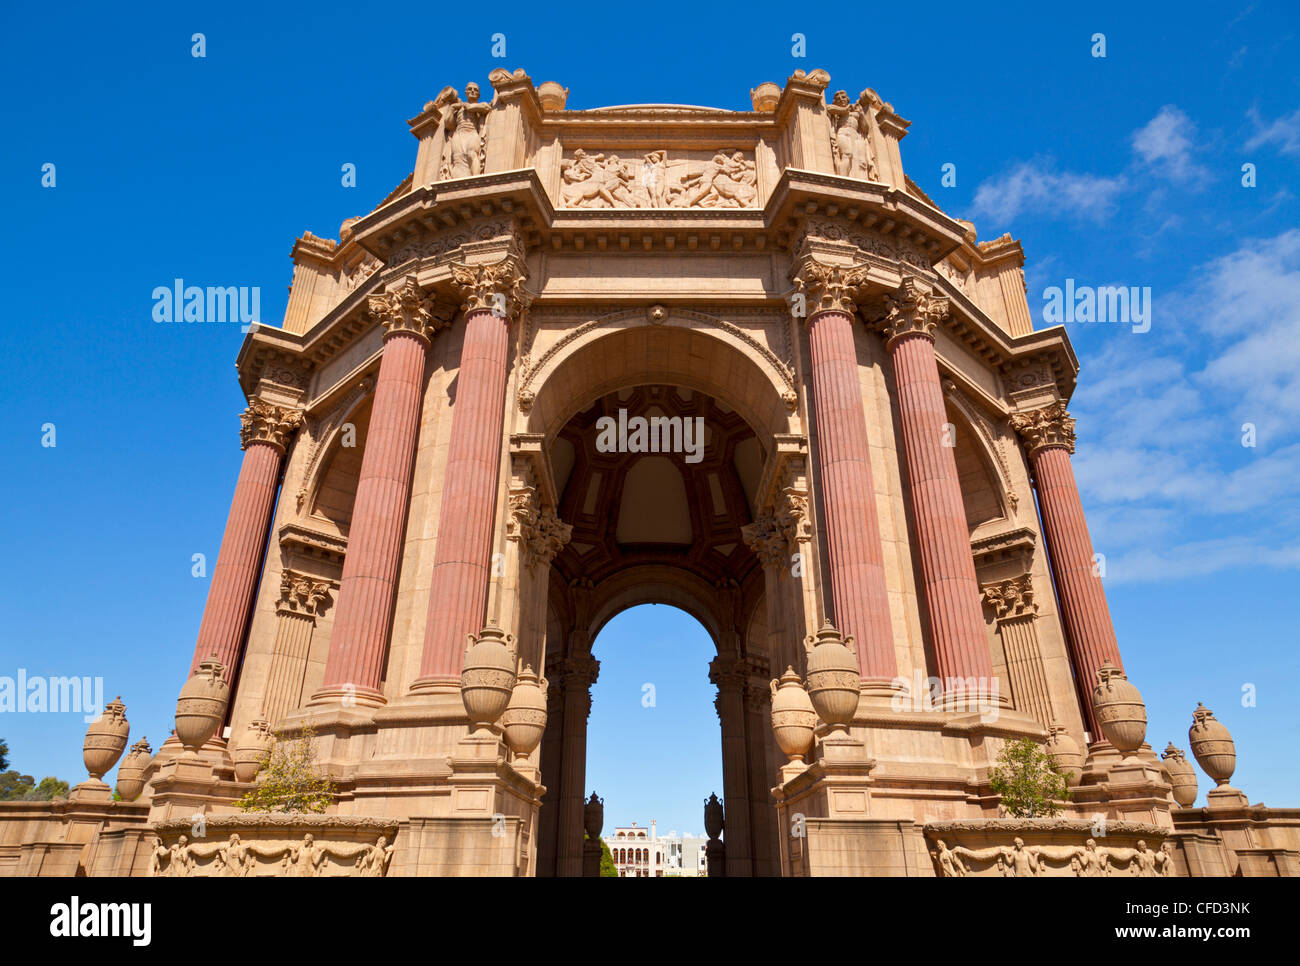 Palace of Fine Arts, built by Bernard Maybeck as a ruin in 1915 for the Expo, San Francisco, California, USA - Stock Image